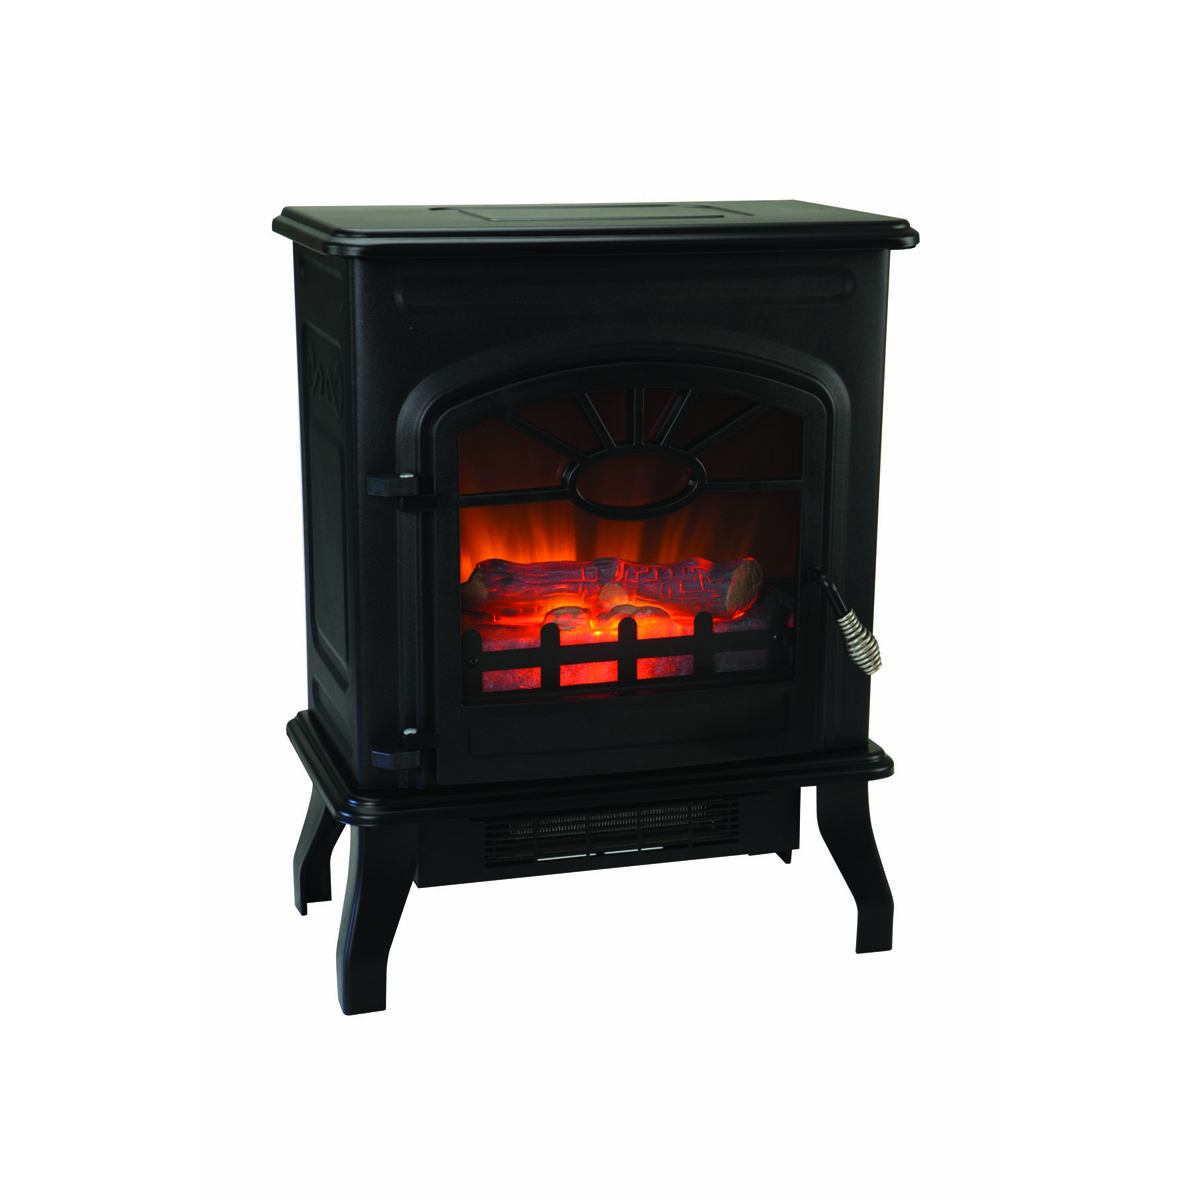 7501500 Watt Wood Stove Style Electric Heater Electric pertaining to measurements 1200 X 1200